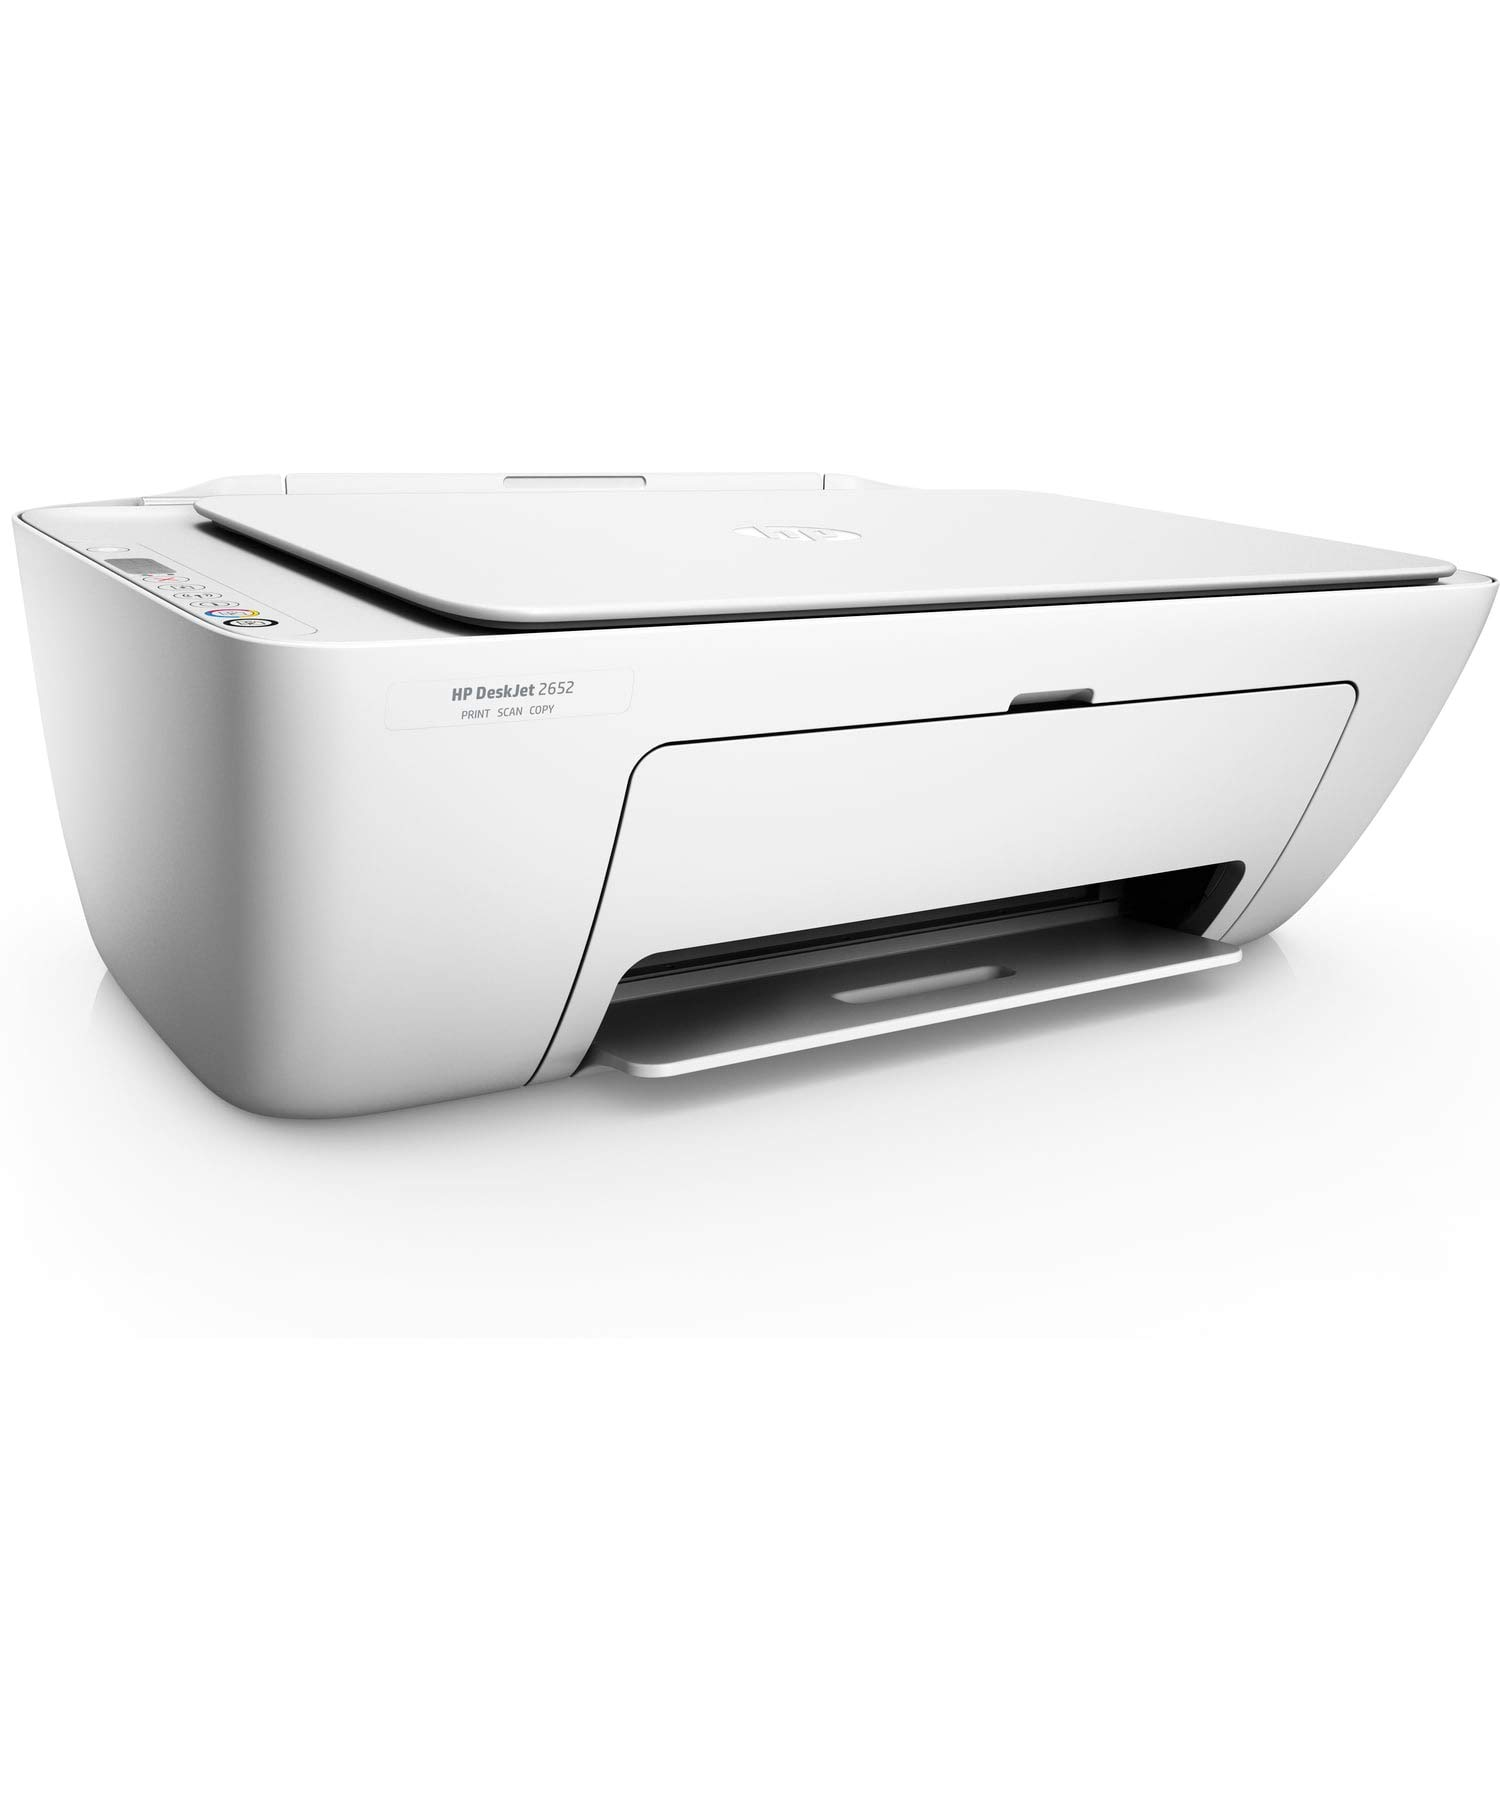 HP DeskJet 2652 All-in-One Printer in White (Renewed)